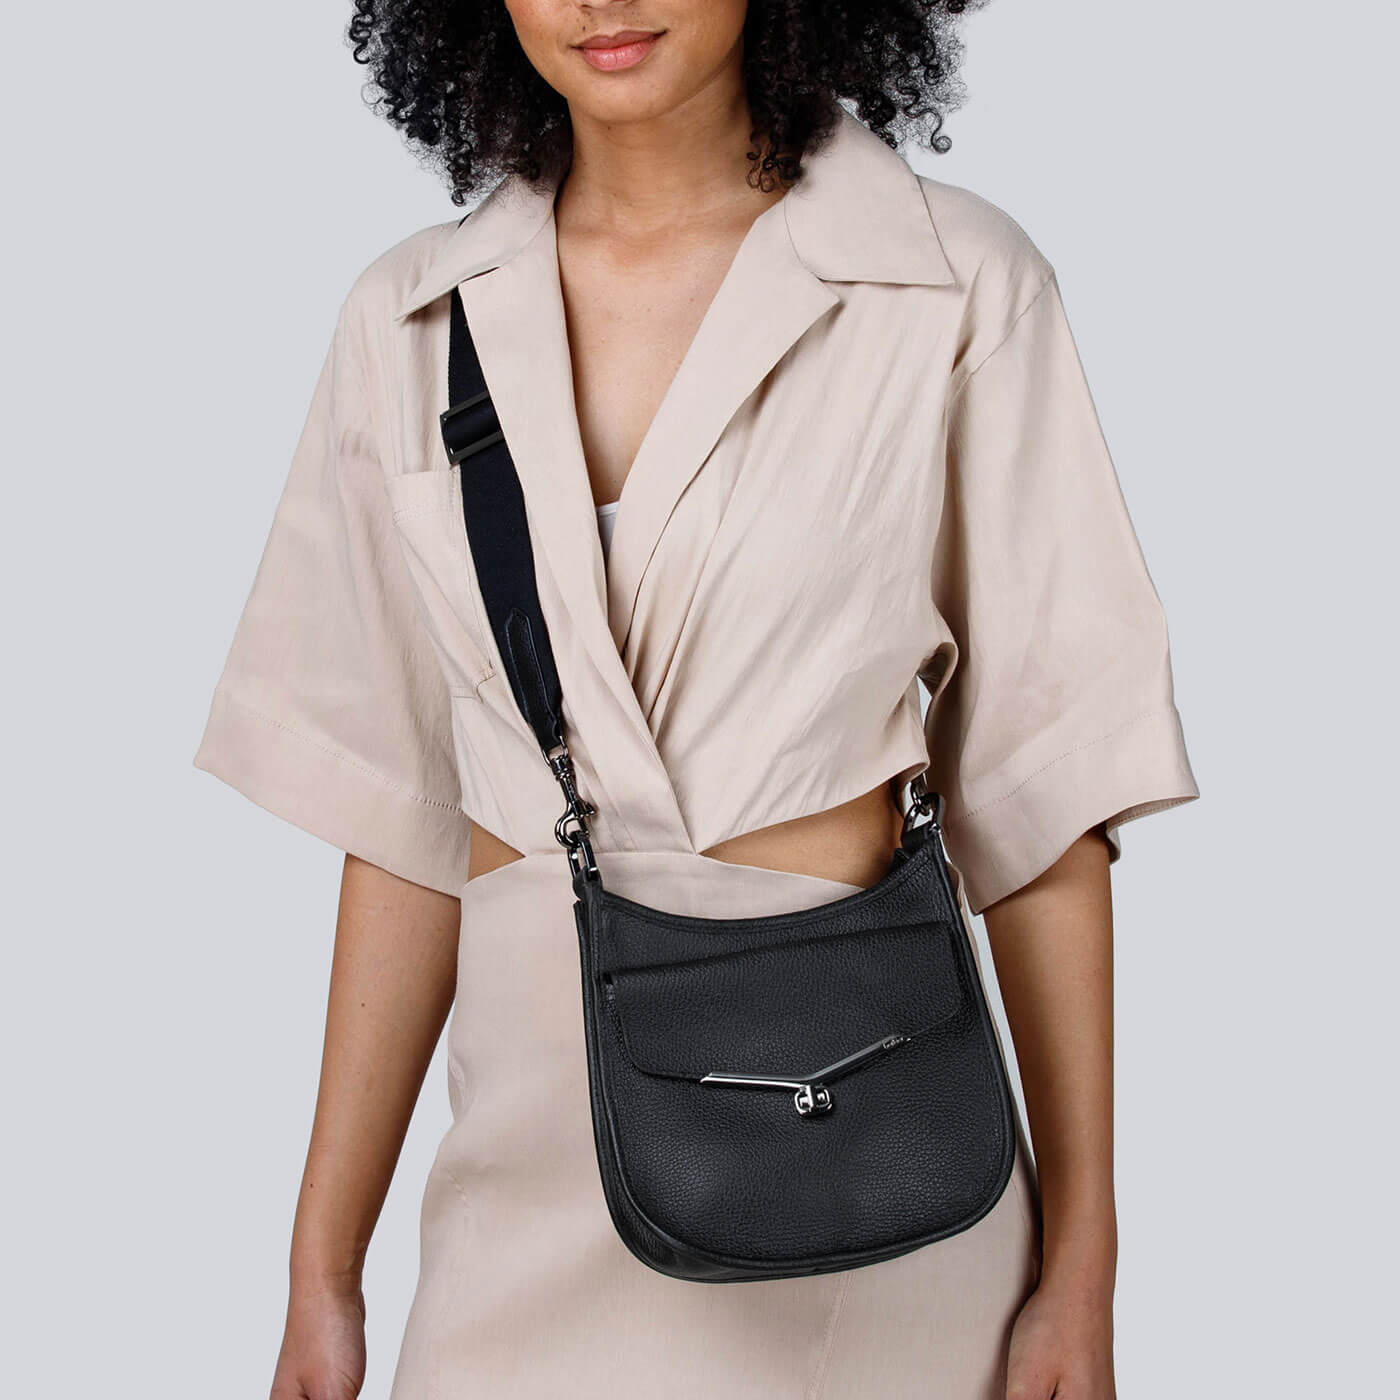 Details about  /MADE IN ITALY VALENTINA  LEATHER CONVERTIBLE BUCKET TOTE//HOBO IN IVORY//BLACK NWT